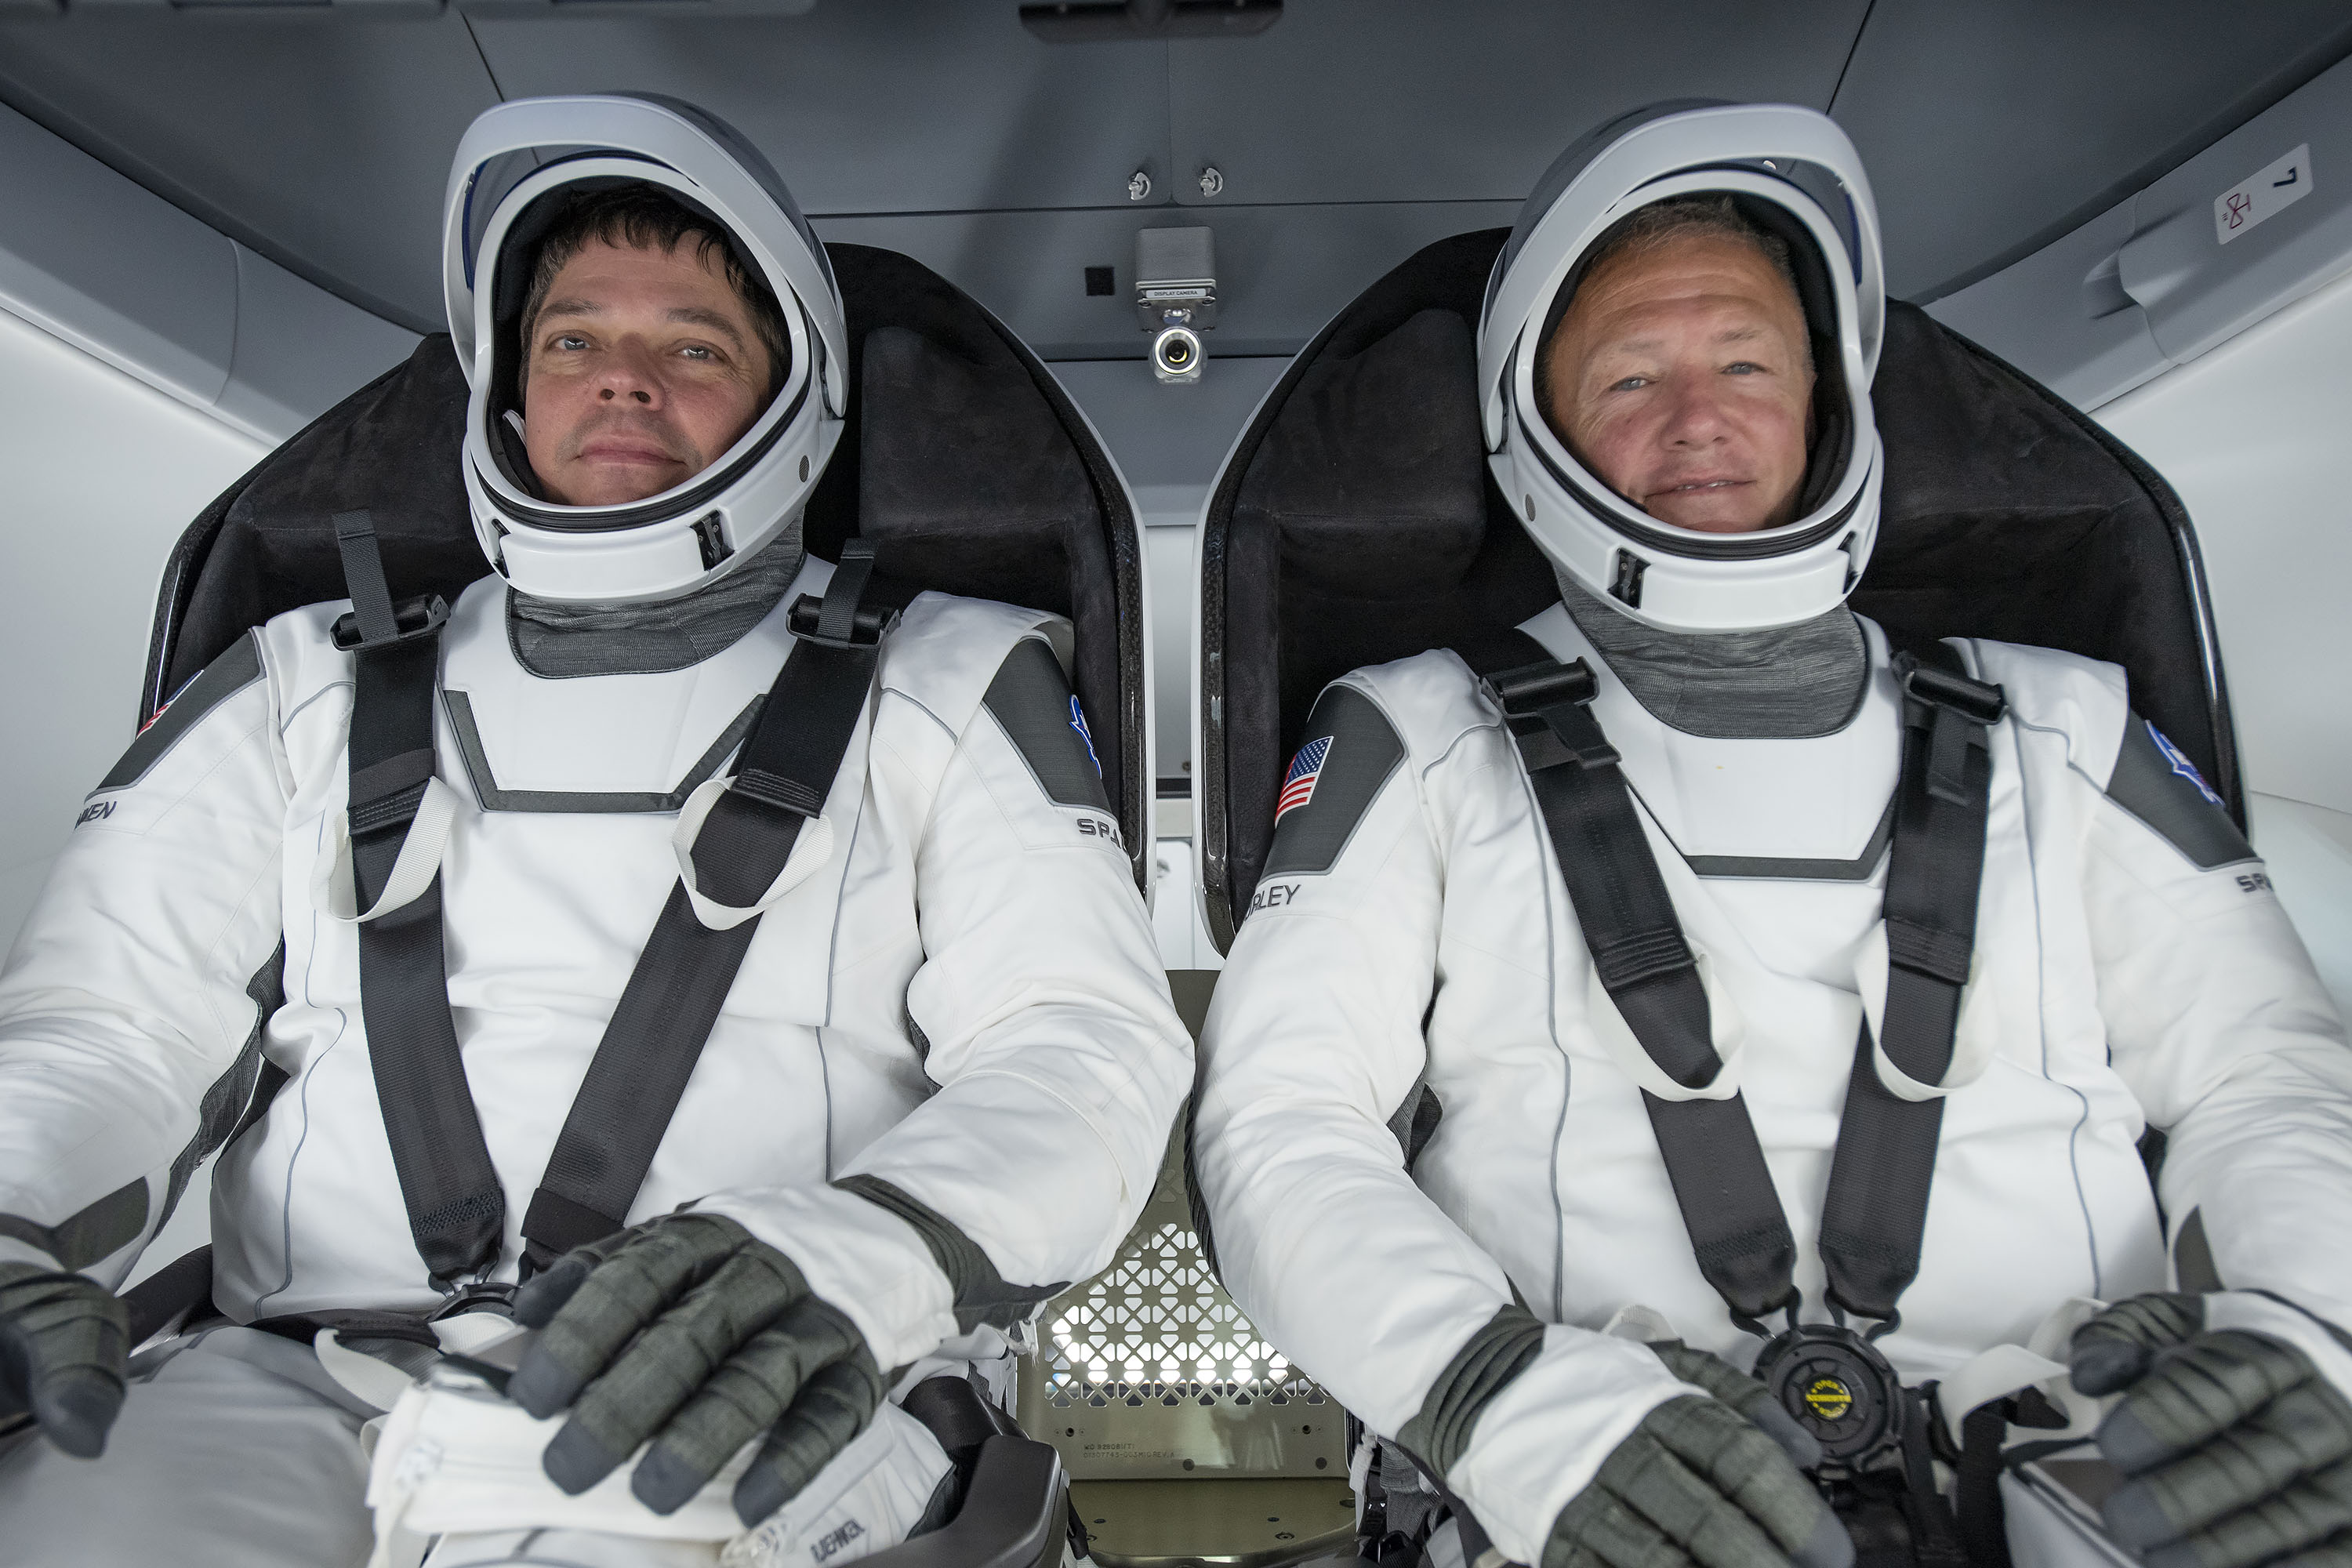 U.S. astronauts discuss 'humbling experience' aboard SpaceX craft